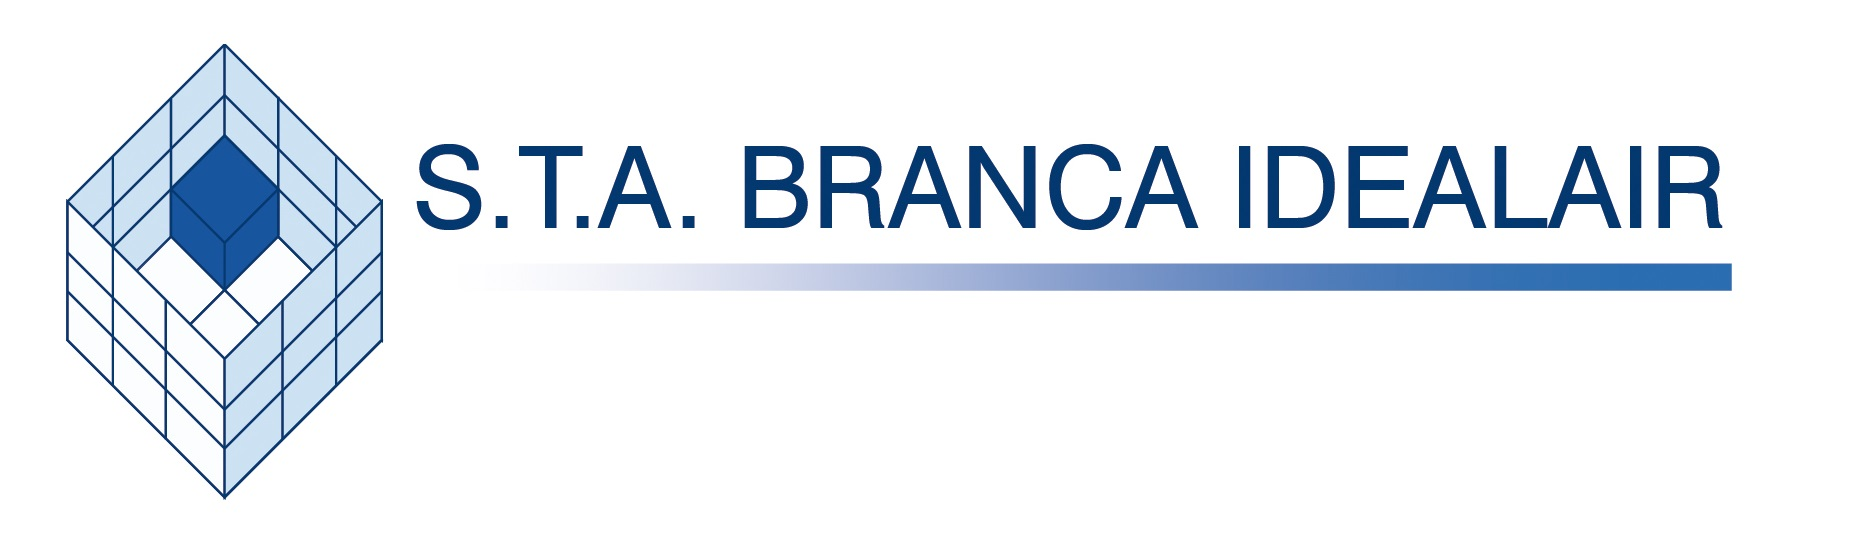 sta-branca-idealair-official-logo